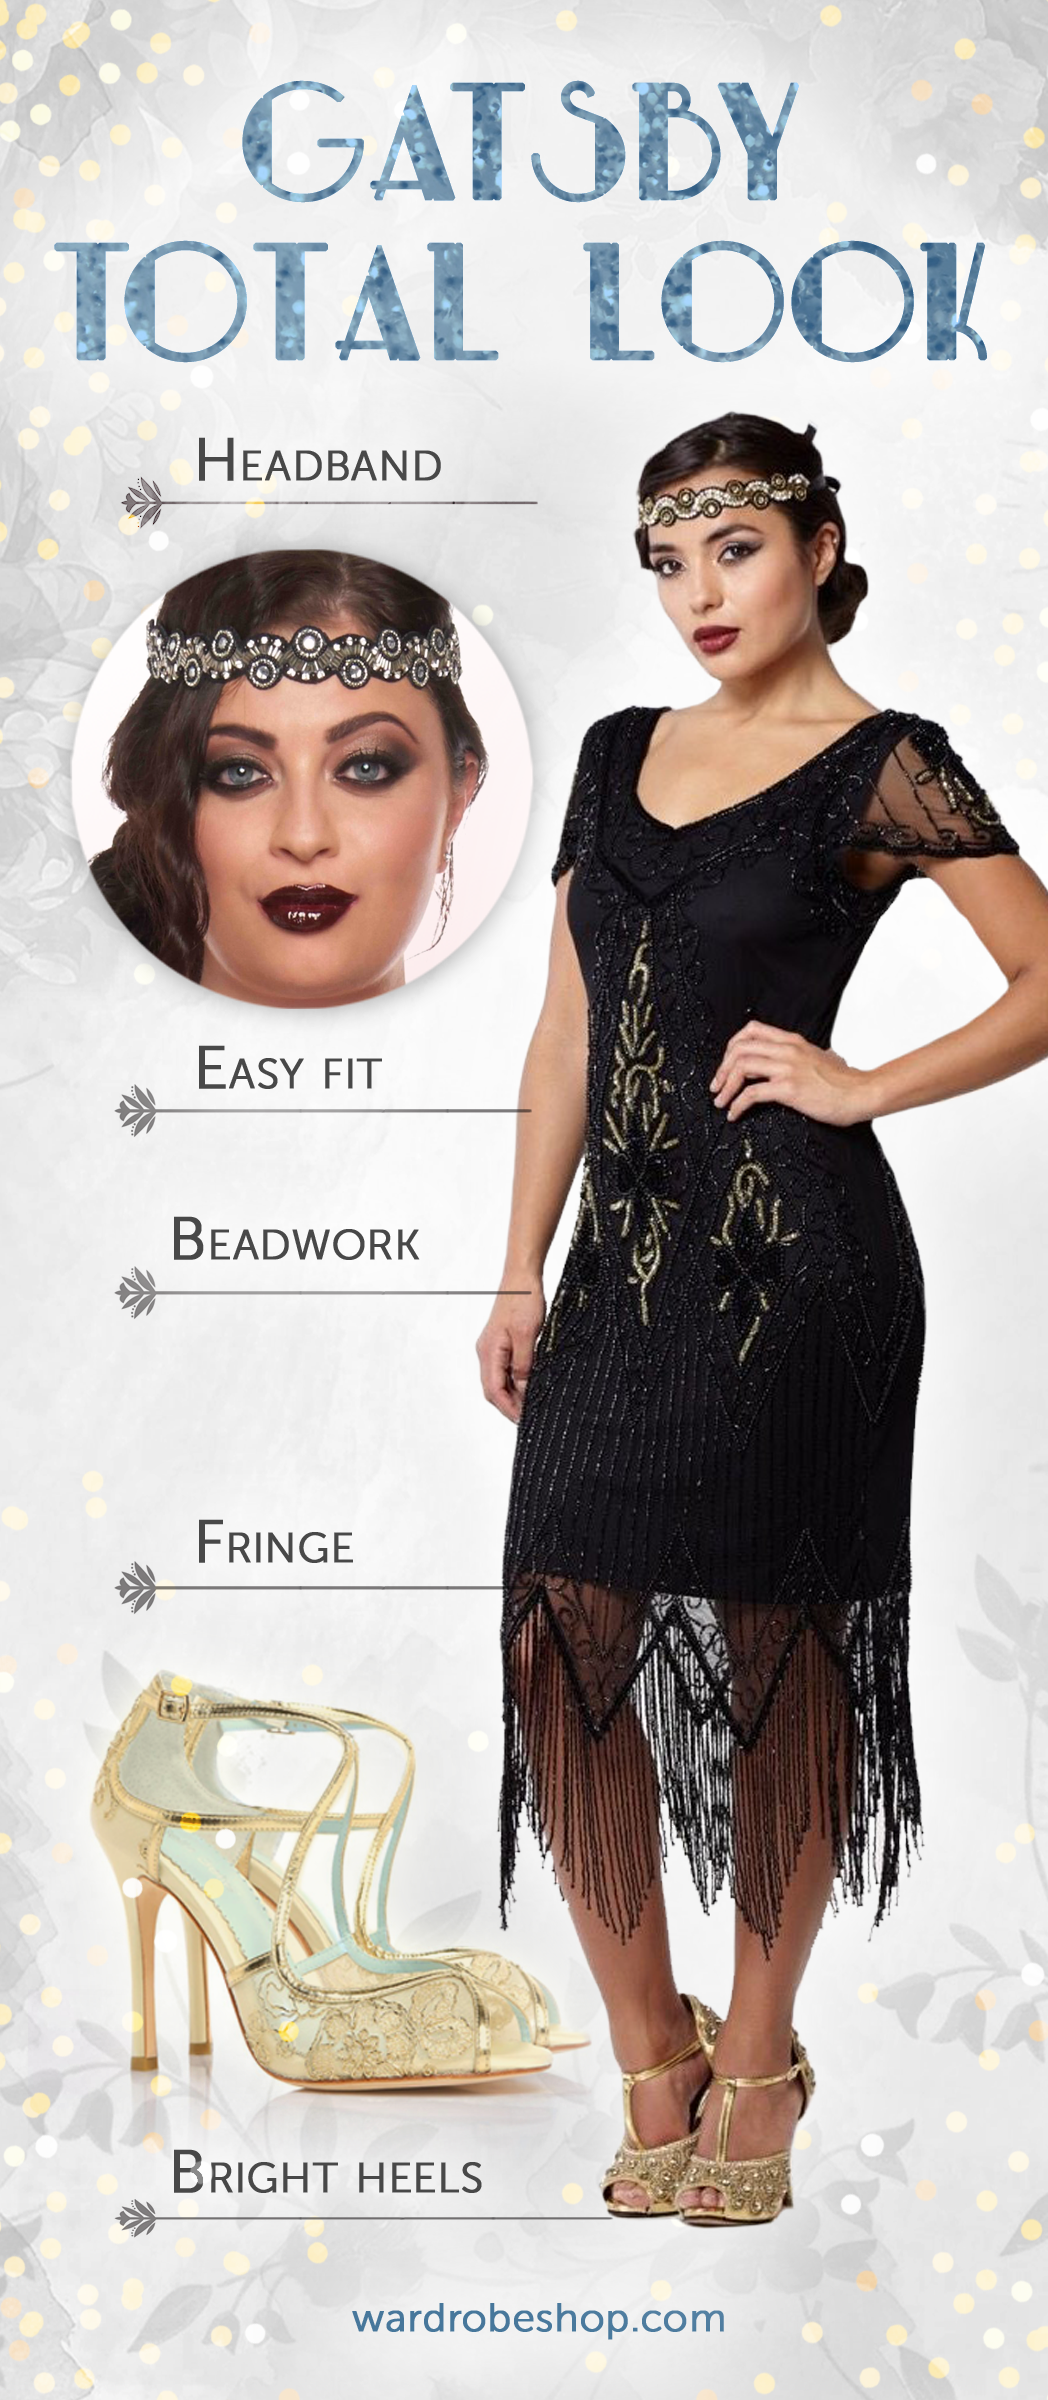 Great Gatsby Inspired Look 1920s Themed Party Vintage Style Outfit Roaring Twenties Ret Gatsby Party Dress 1920s Party Dresses Great Gatsby Party Dress [ 2400 x 1048 Pixel ]